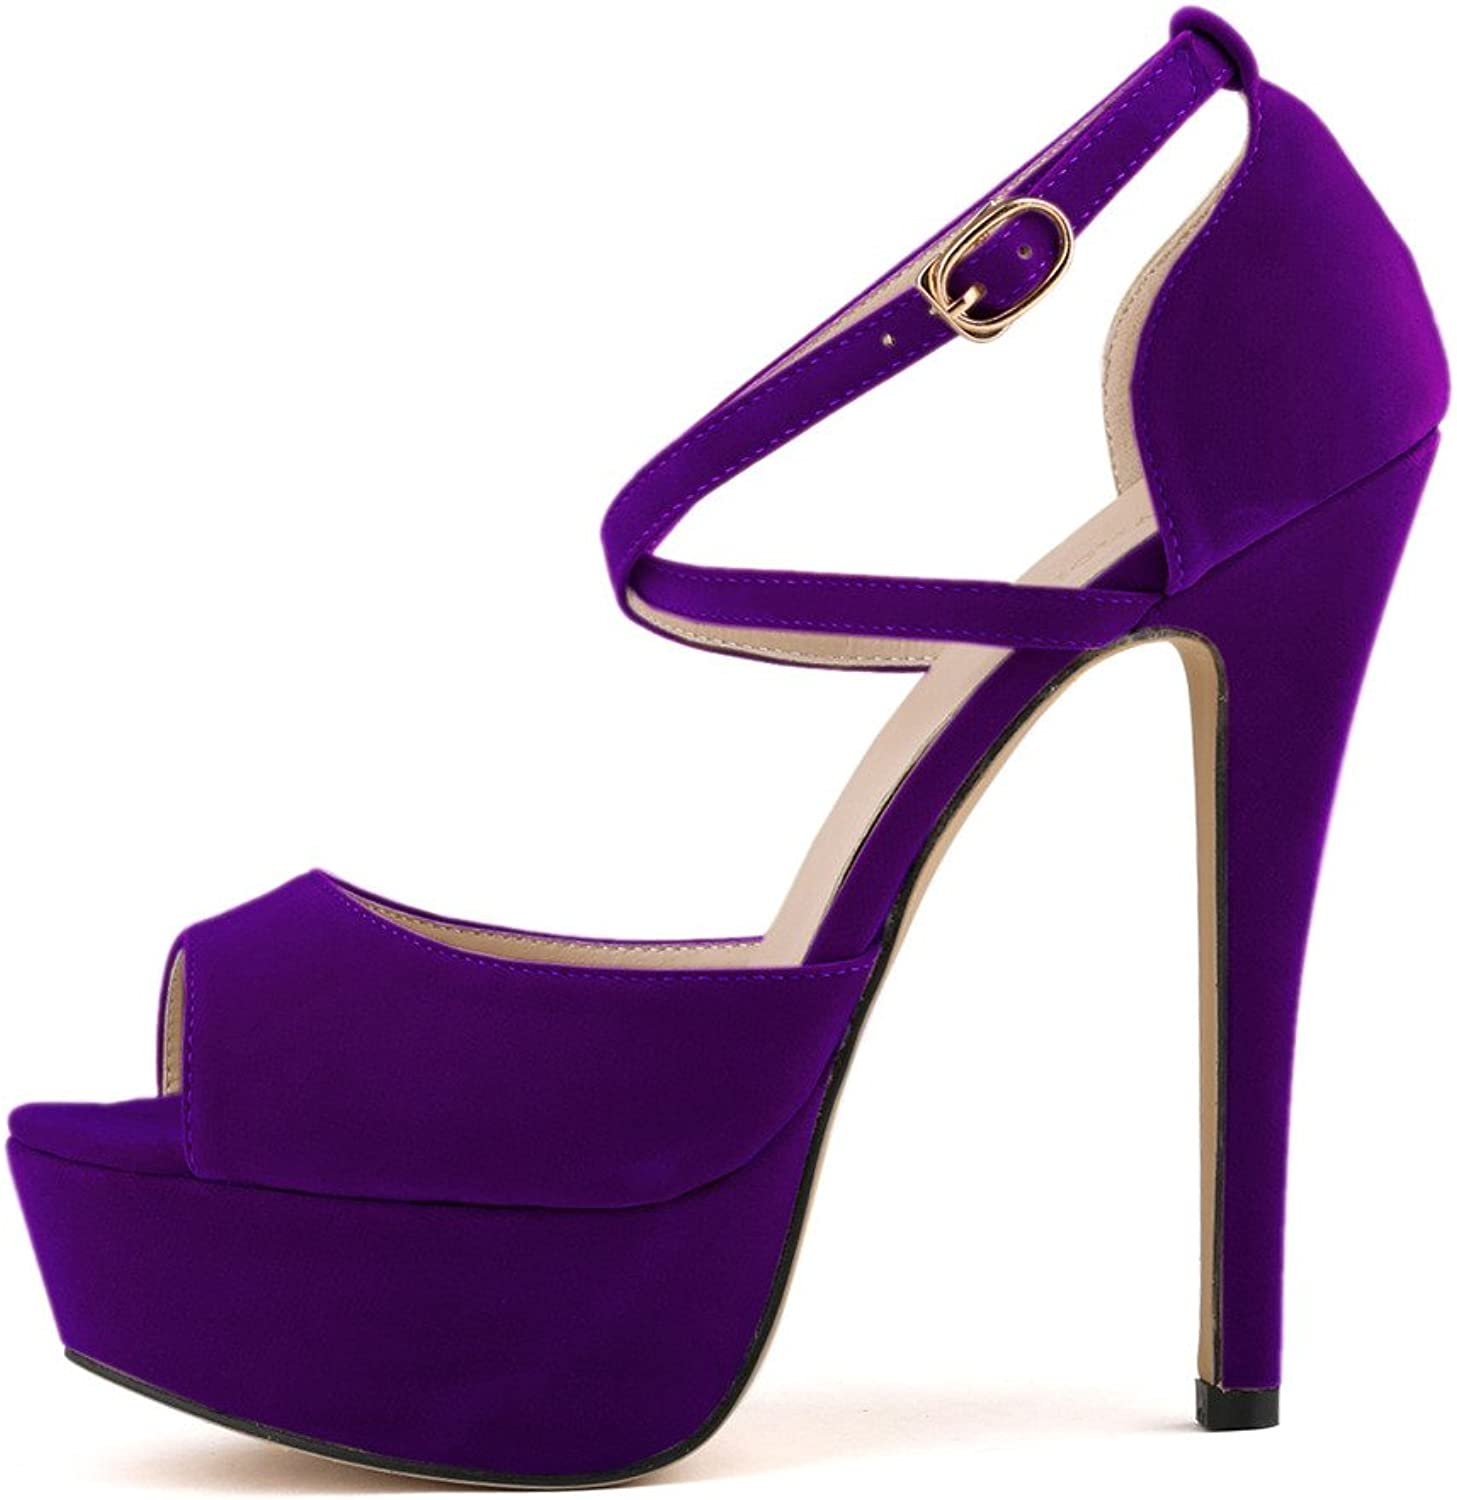 ZriEy Women Sandals 14CM   5.5 inches High-Heeled Peep Toe Platform Party Sandals for Wedding Working shoes Double color